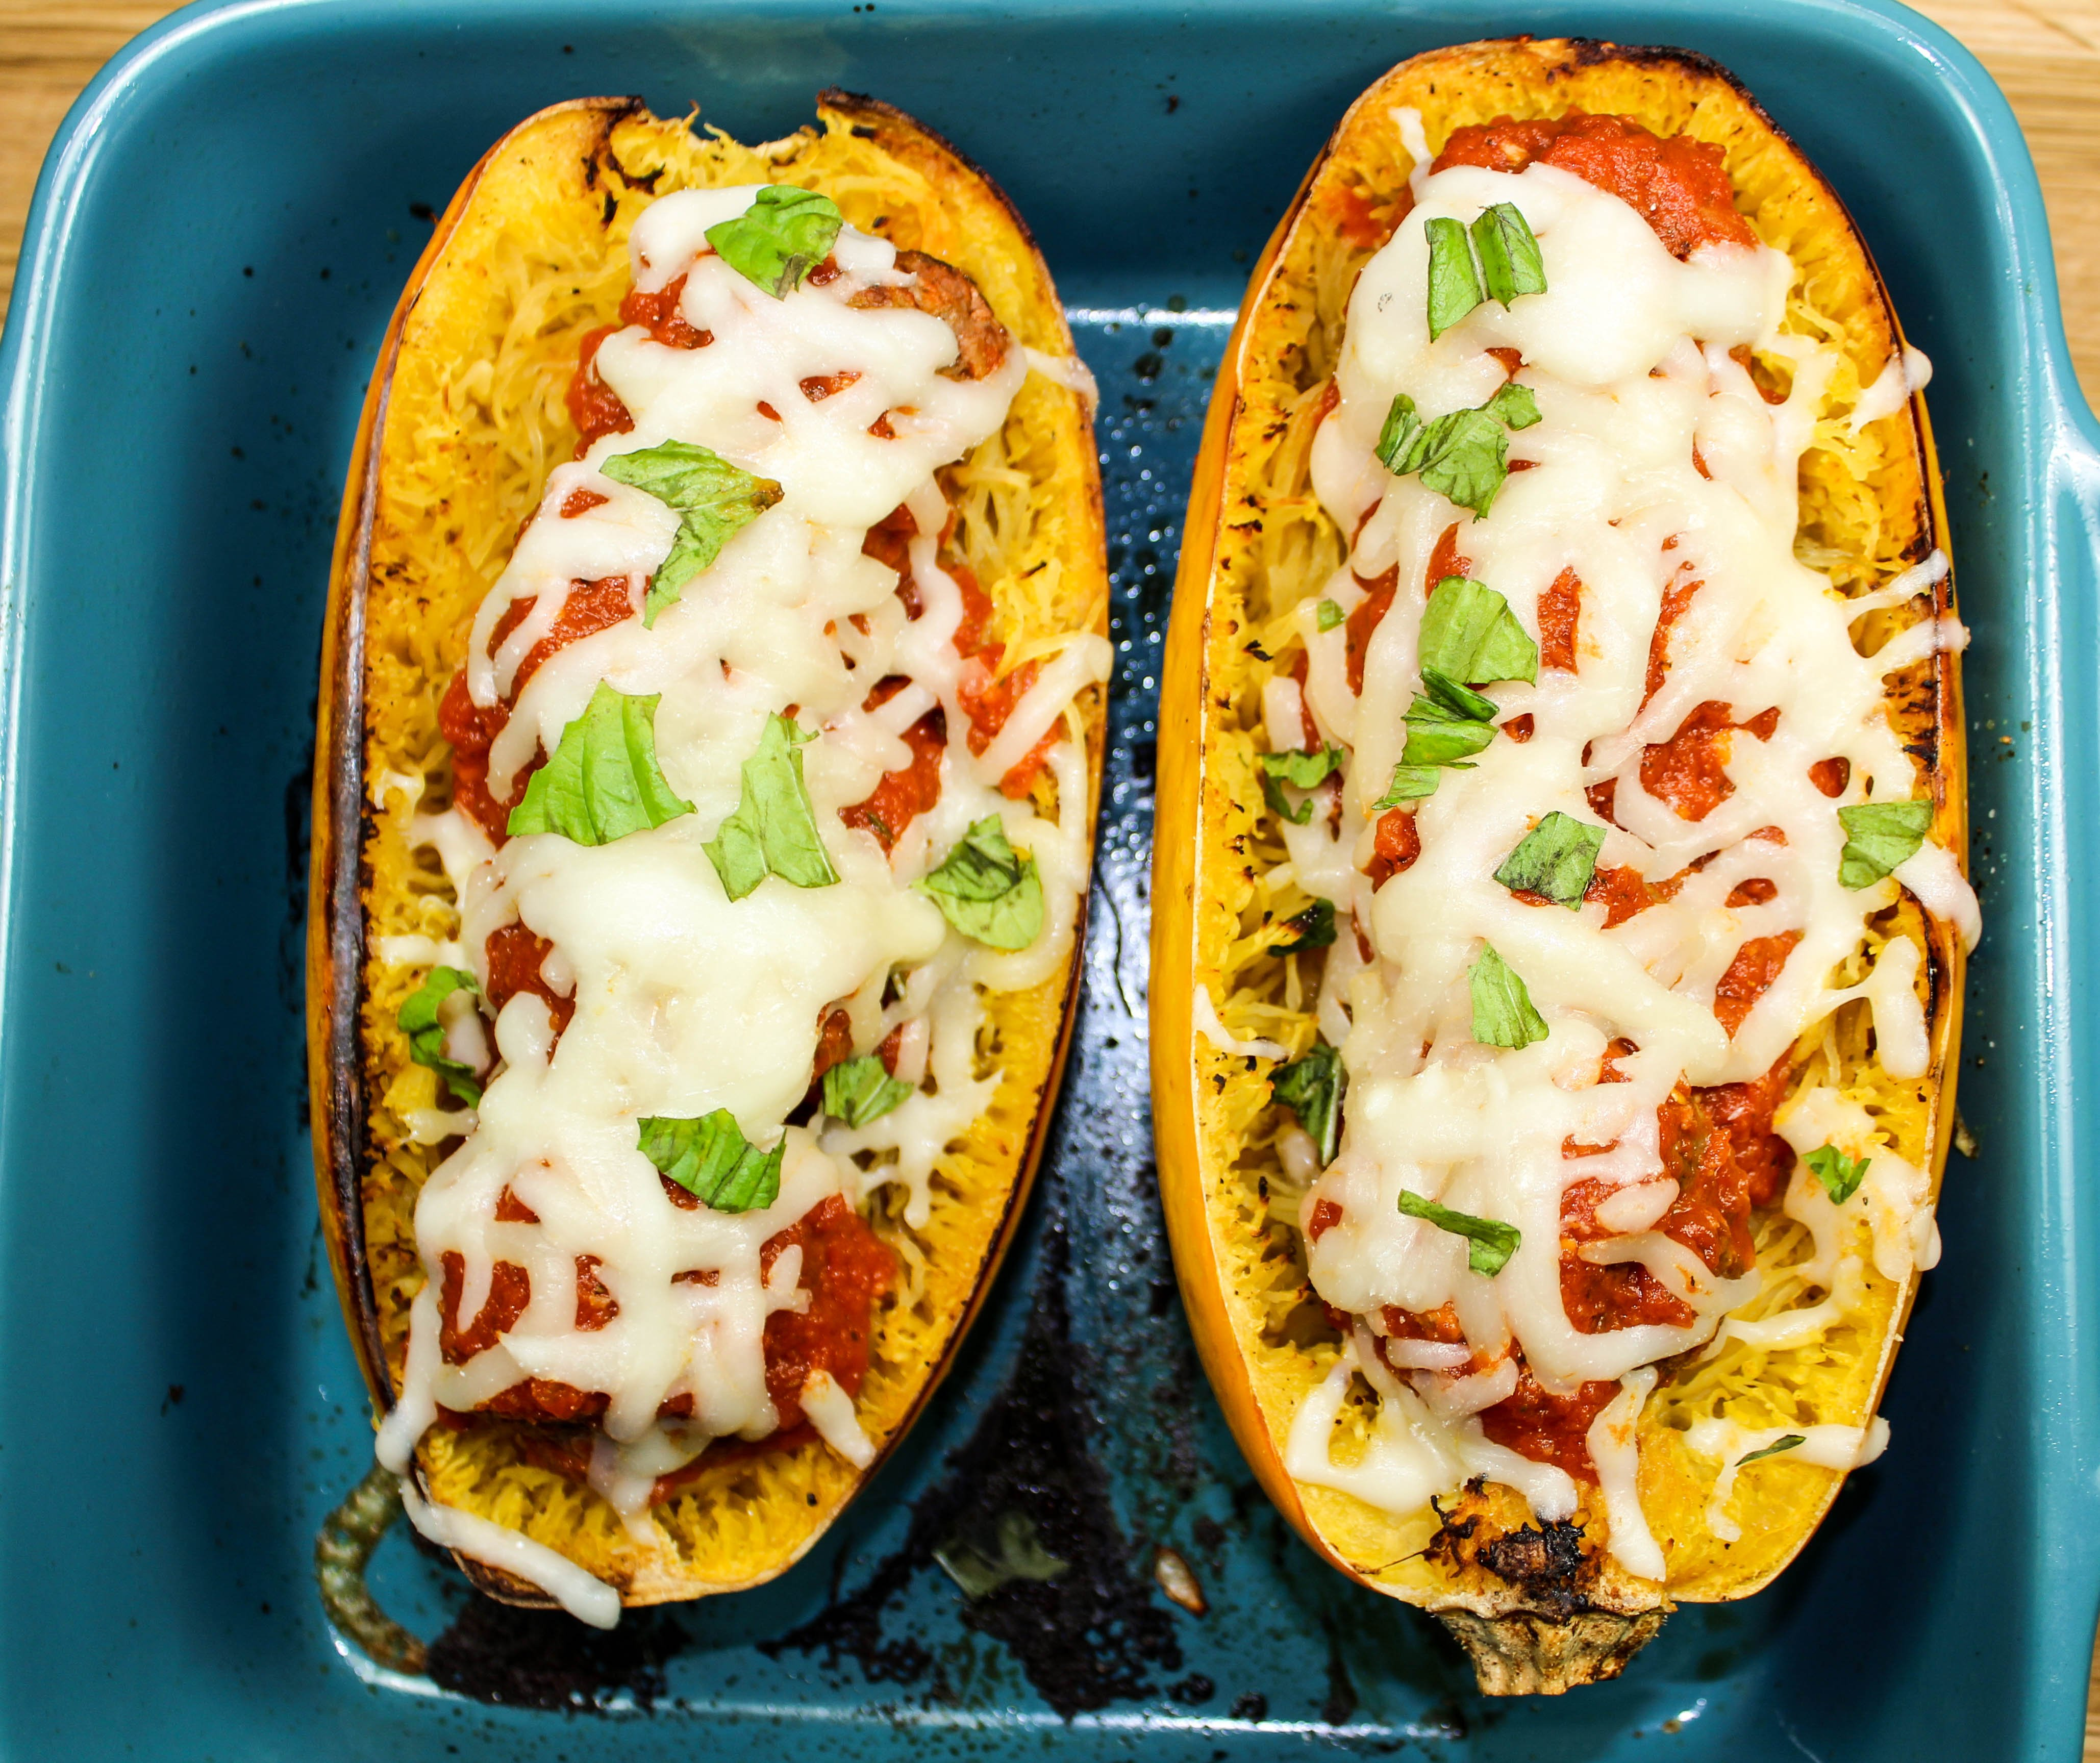 Meatball Stuffed Spaghetti Squash-Spaghetti & meatballs without the guilt. Juicy meatballs, stuffed in spaghetti squash, topped with fresh marinara sauce & cheese. Comfort food lightened up! Weight Watcher friendly (10 SmartPoints).